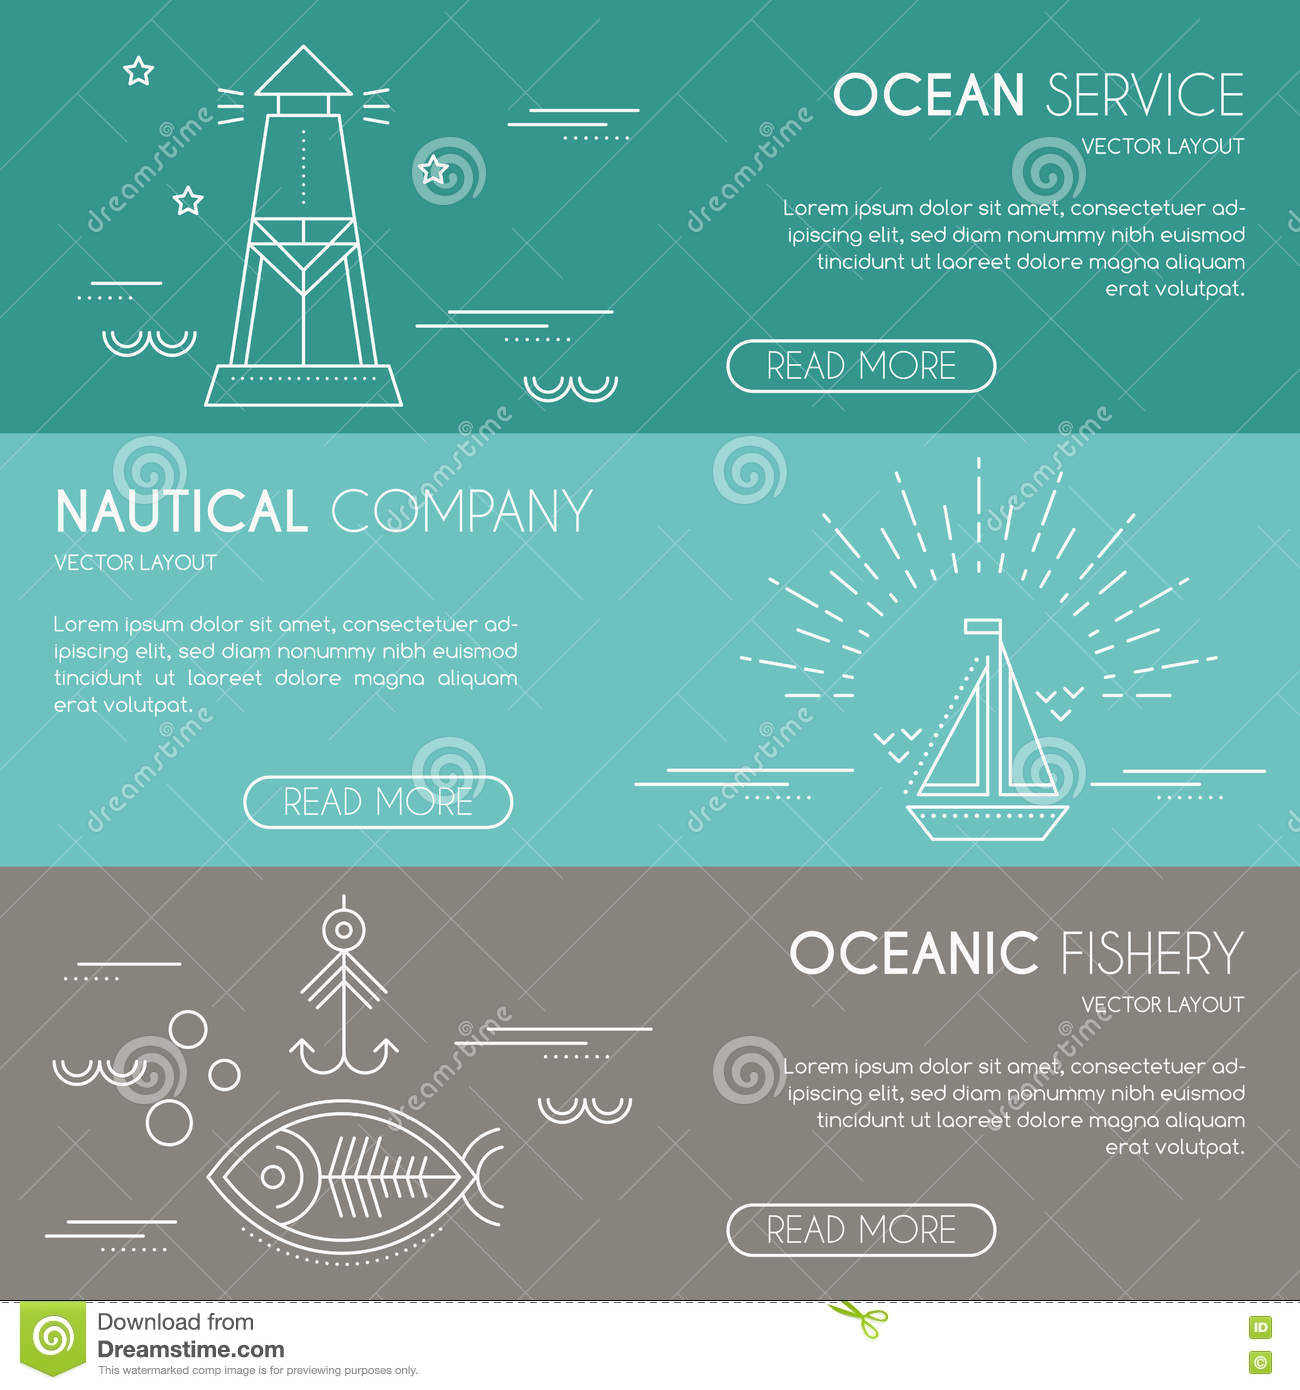 Nautical or seafaring company banner design template with thin nautical or seafaring company banner design template with thin lile style illustration pronofoot35fo Images